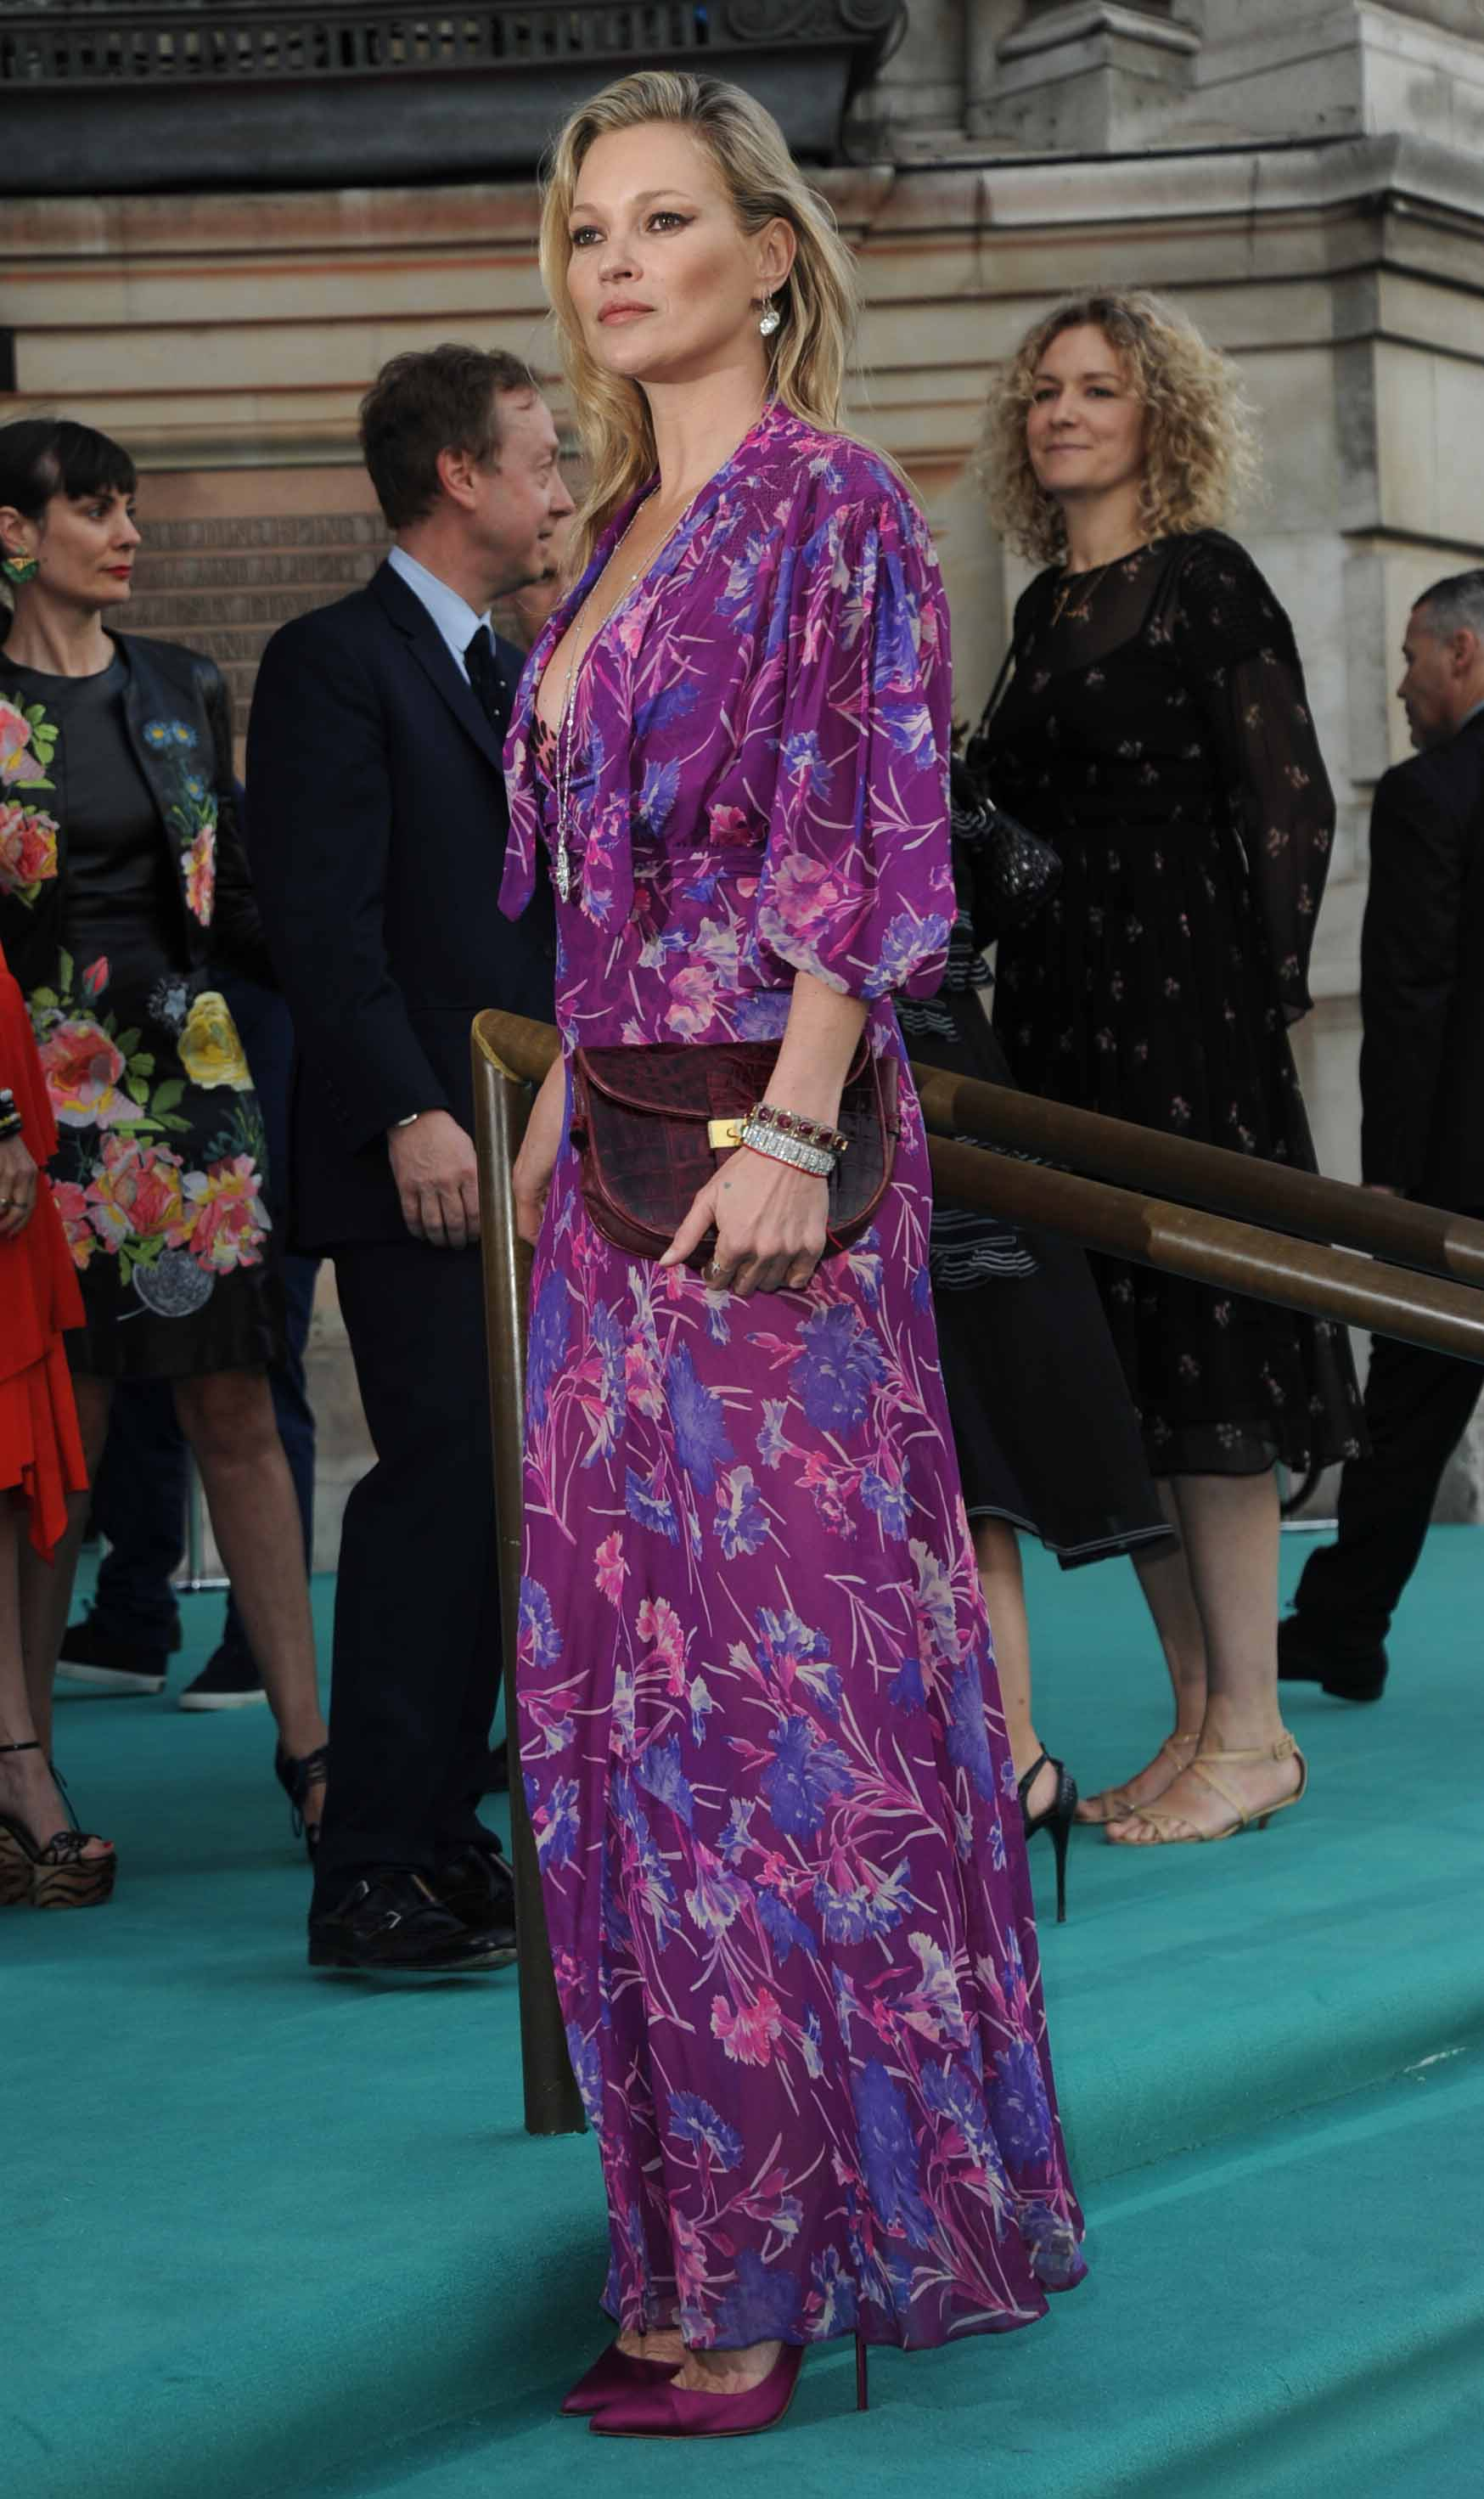 Get The Look: Kate Moss Wows in Floor-Length Floral Dress at the Victoria and Albert Museum Summer Party